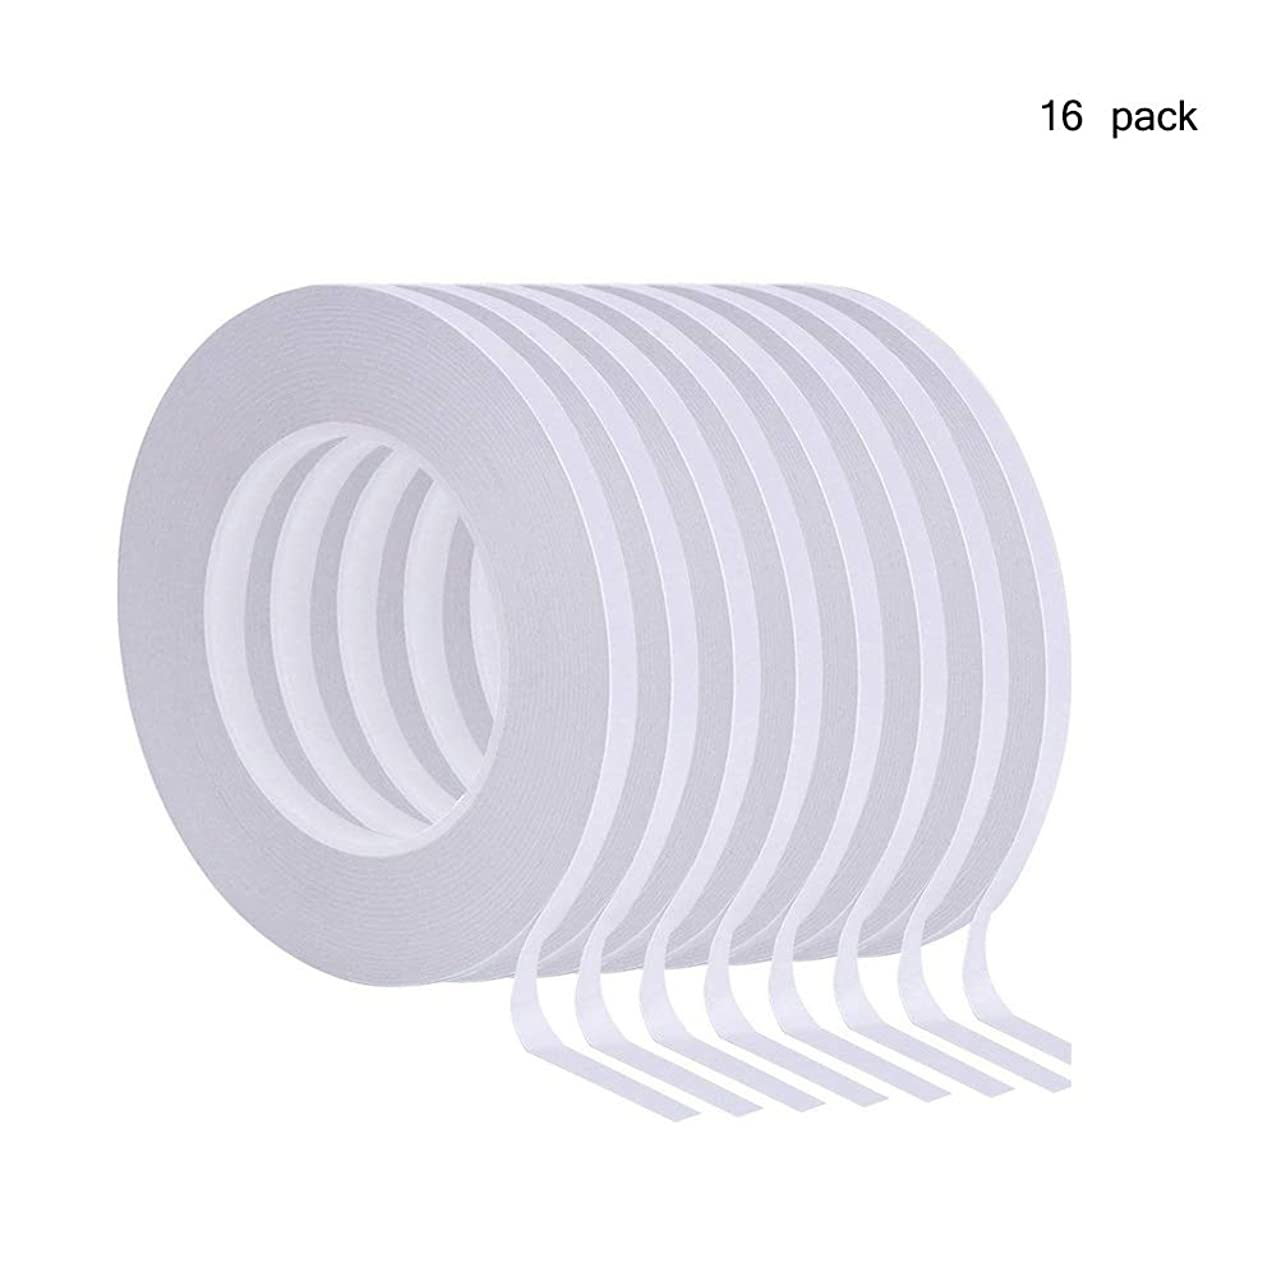 16 Rolls Double-Sided Tape Adhesive Sticky Tapes for Scrapbooking, Photos, Invitation Cards, Paper, DIY Crafts and Office School Stationery Supplies, Each Roll 21Yards Long, 1/4 inch Wide